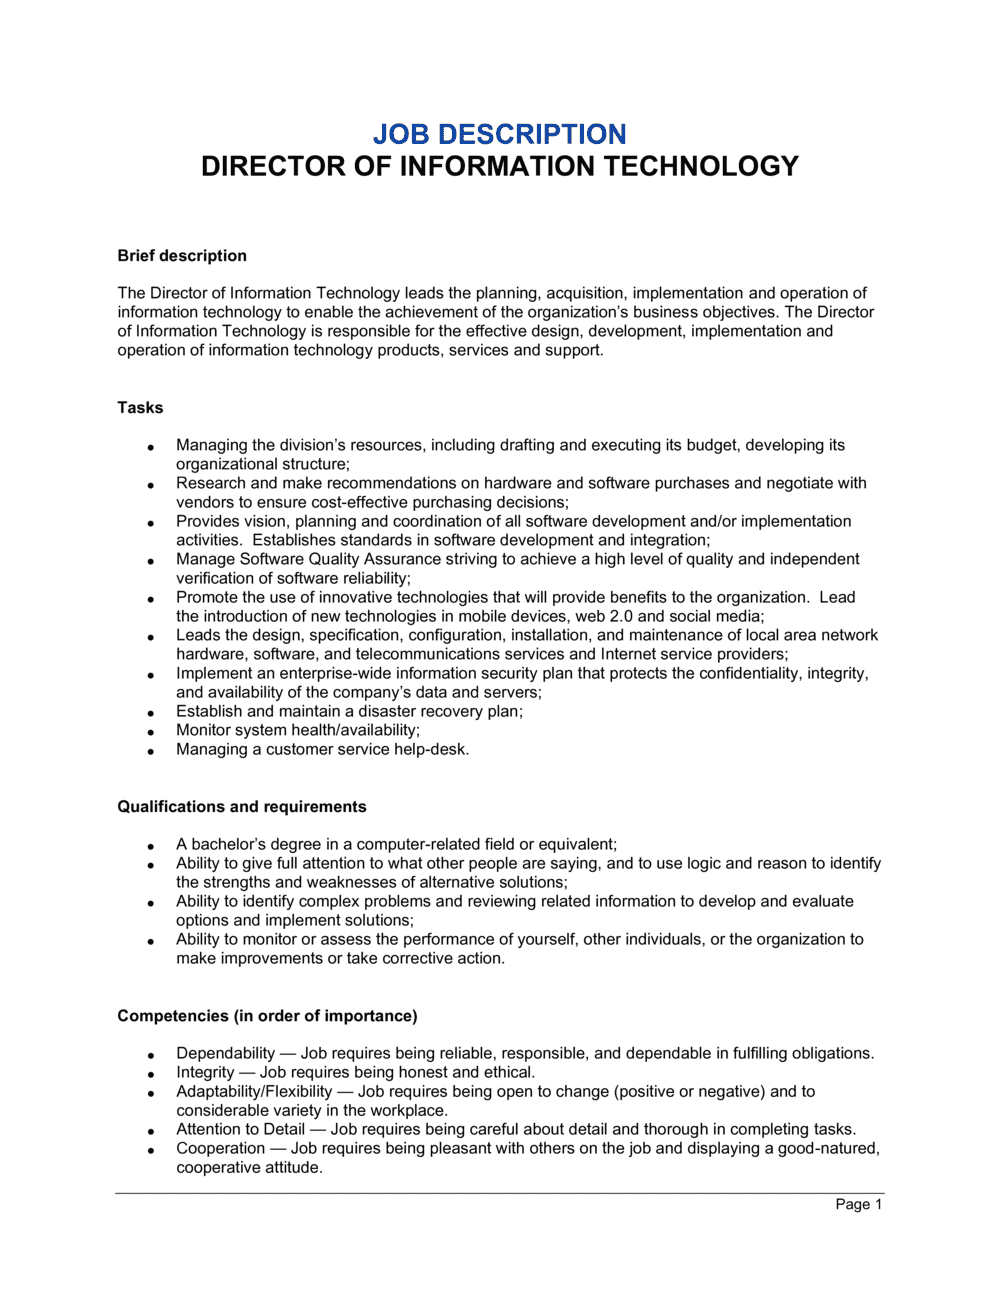 Business-in-a-Box's Director of Information Technology Job Description Template